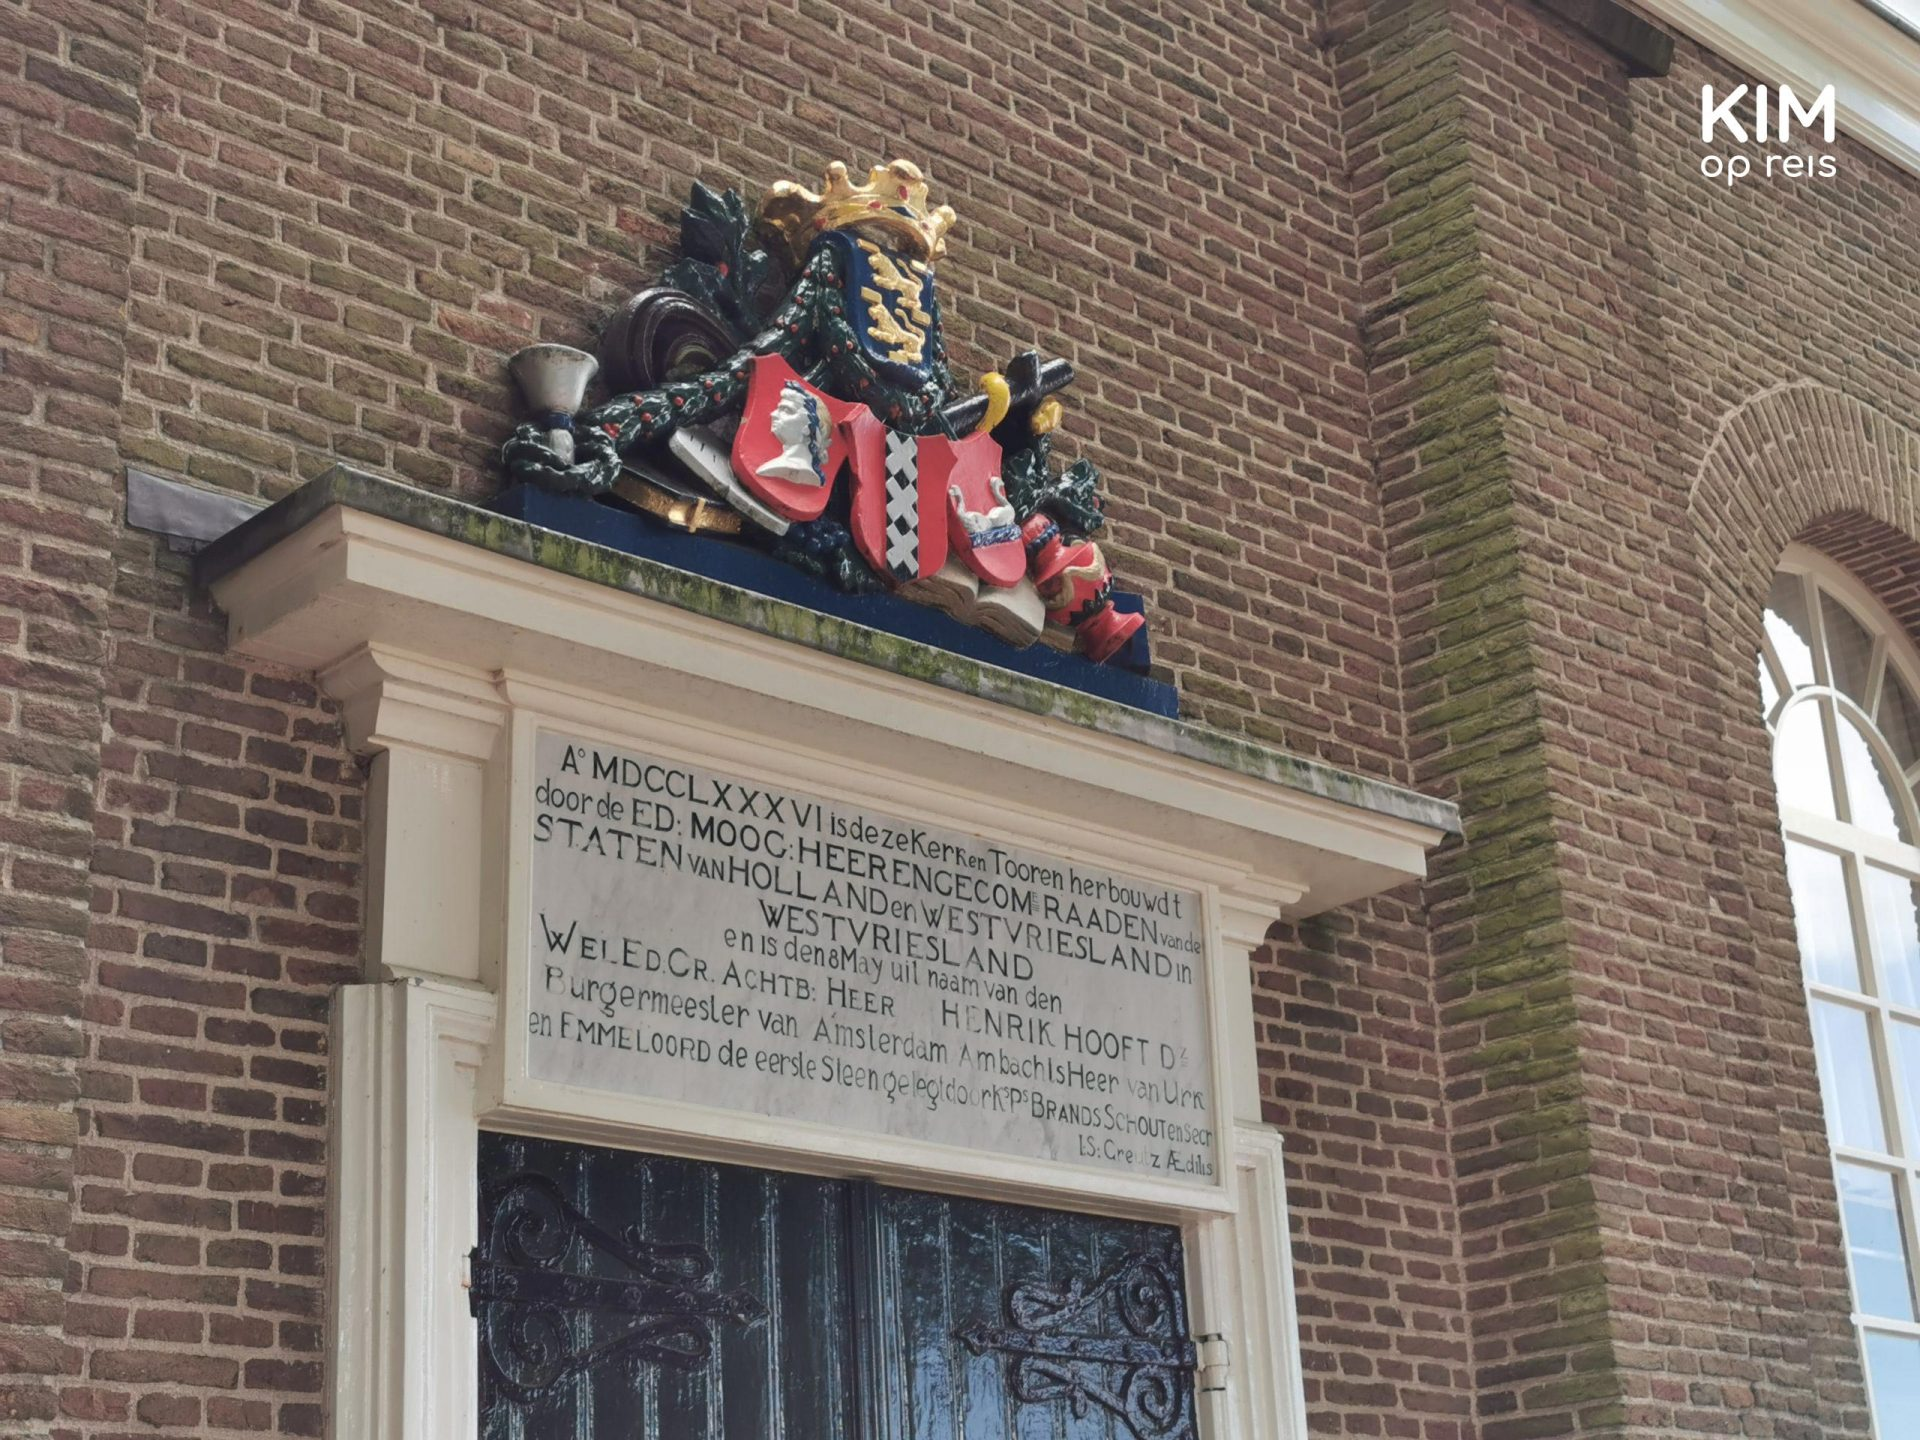 Amsterdam coat of arms on the Kerkje aan Zee - Door with a marble slab with print in Latin and above it the coat of arms of Amsterdam